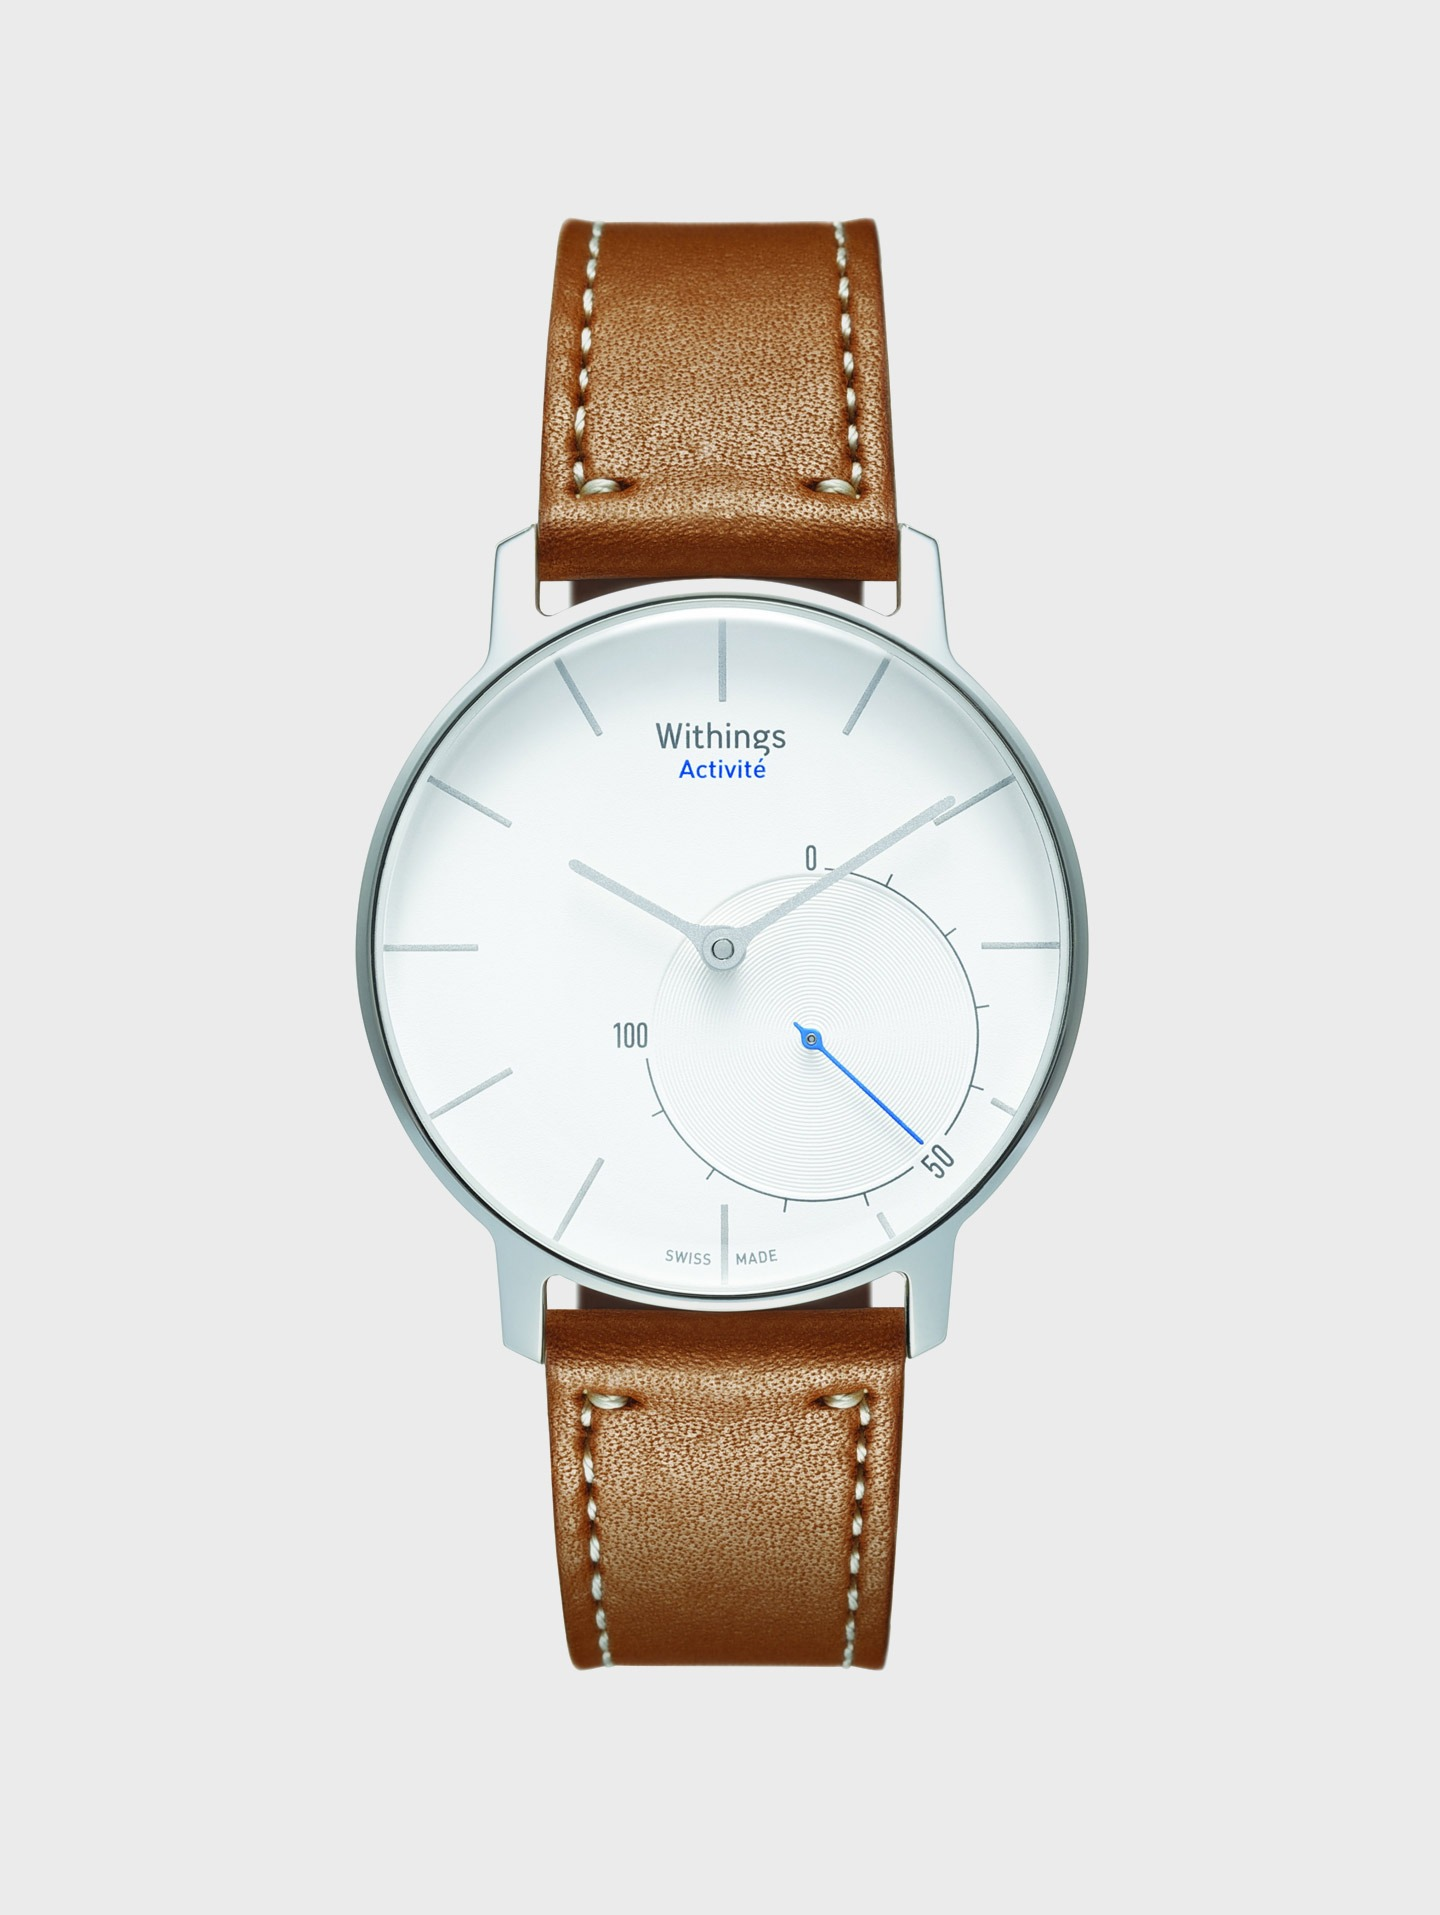 The Withings Activite